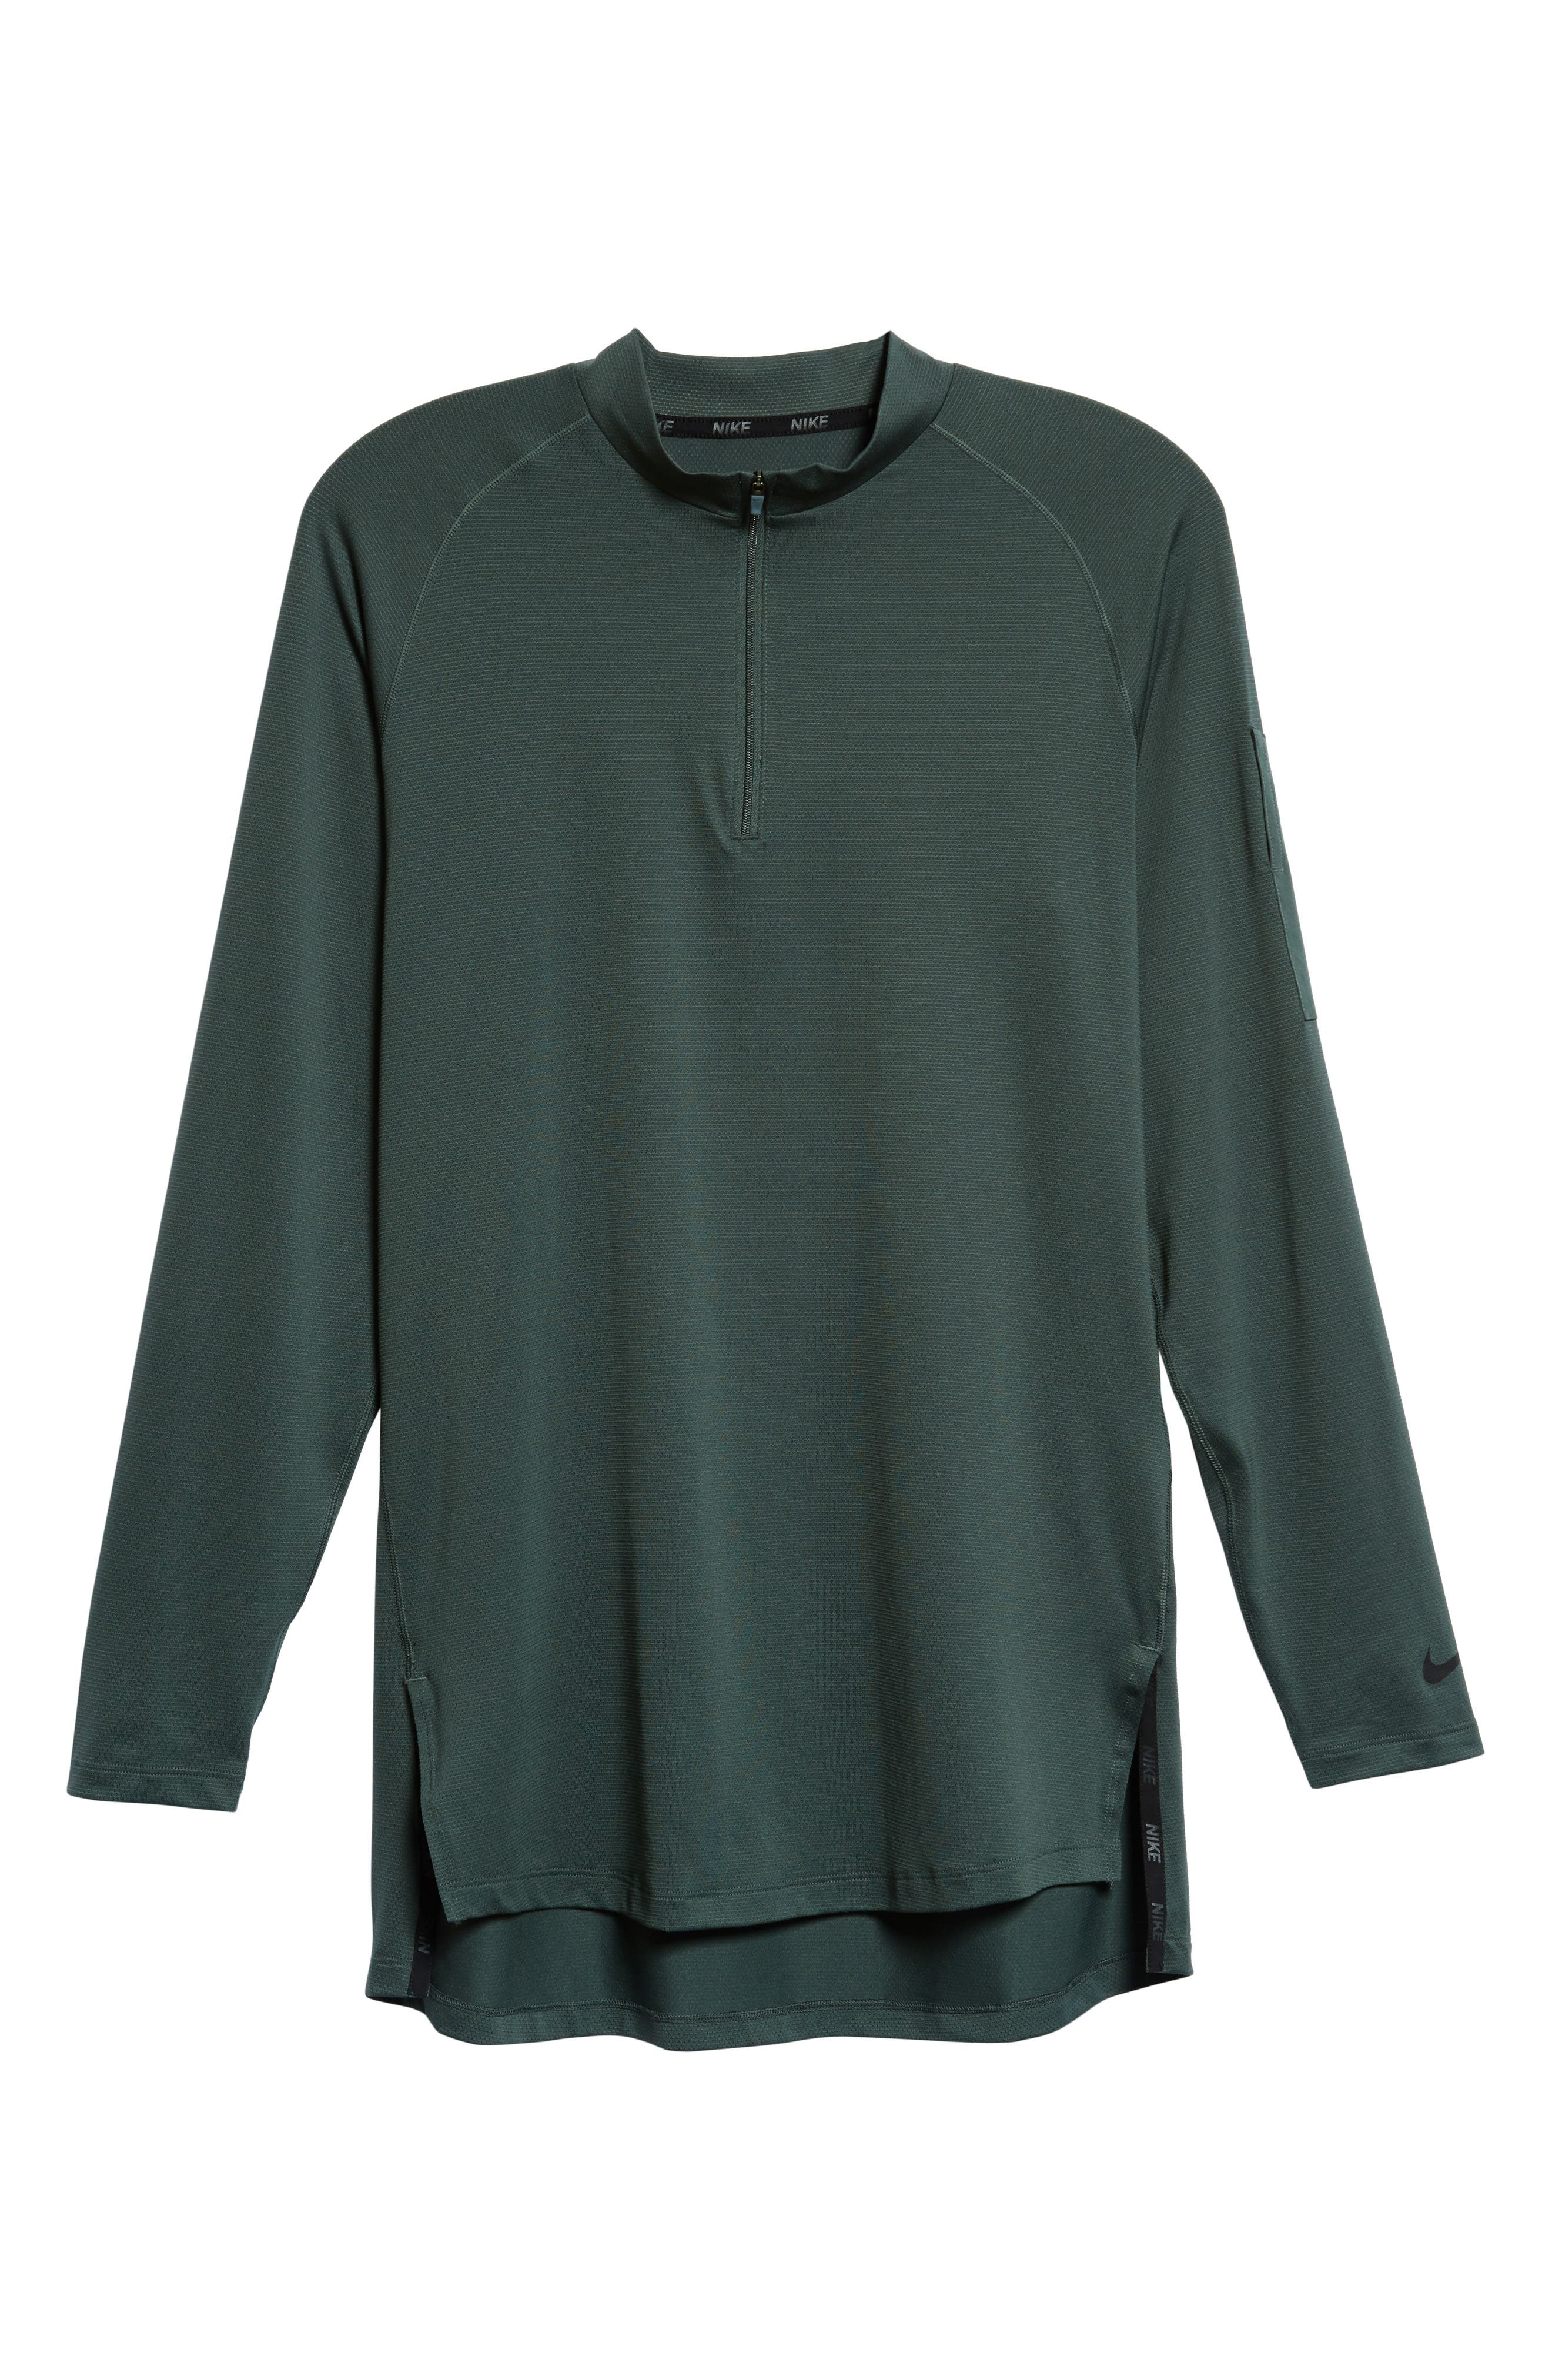 NIKE,                             Pro Fitted Utility Dry Tech Sport Top,                             Alternate thumbnail 6, color,                             VINTAGE GREEN/ BLACK